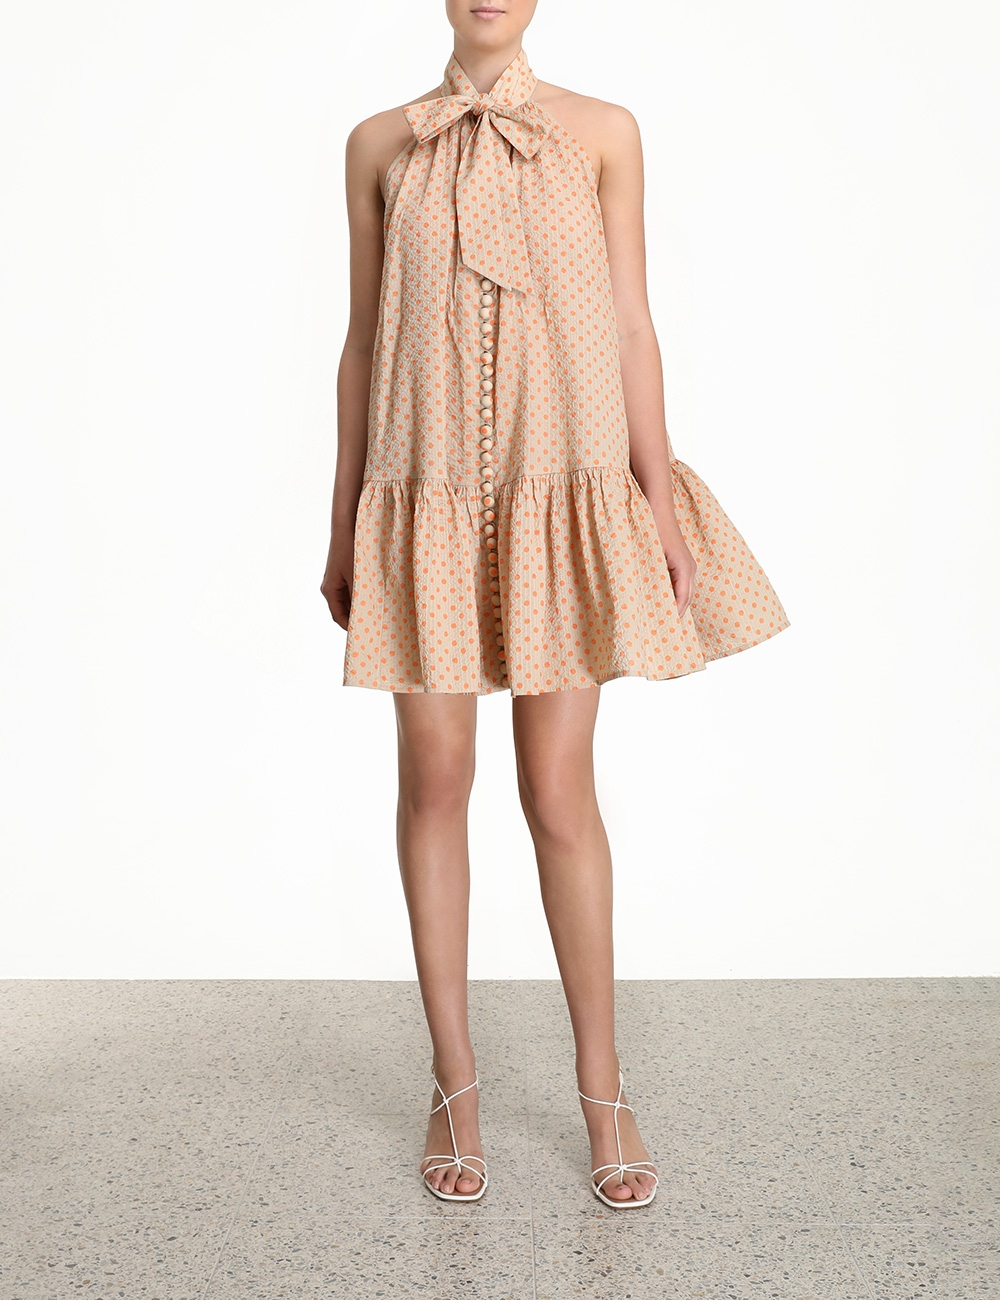 Peggy Bow Tie Short Dress